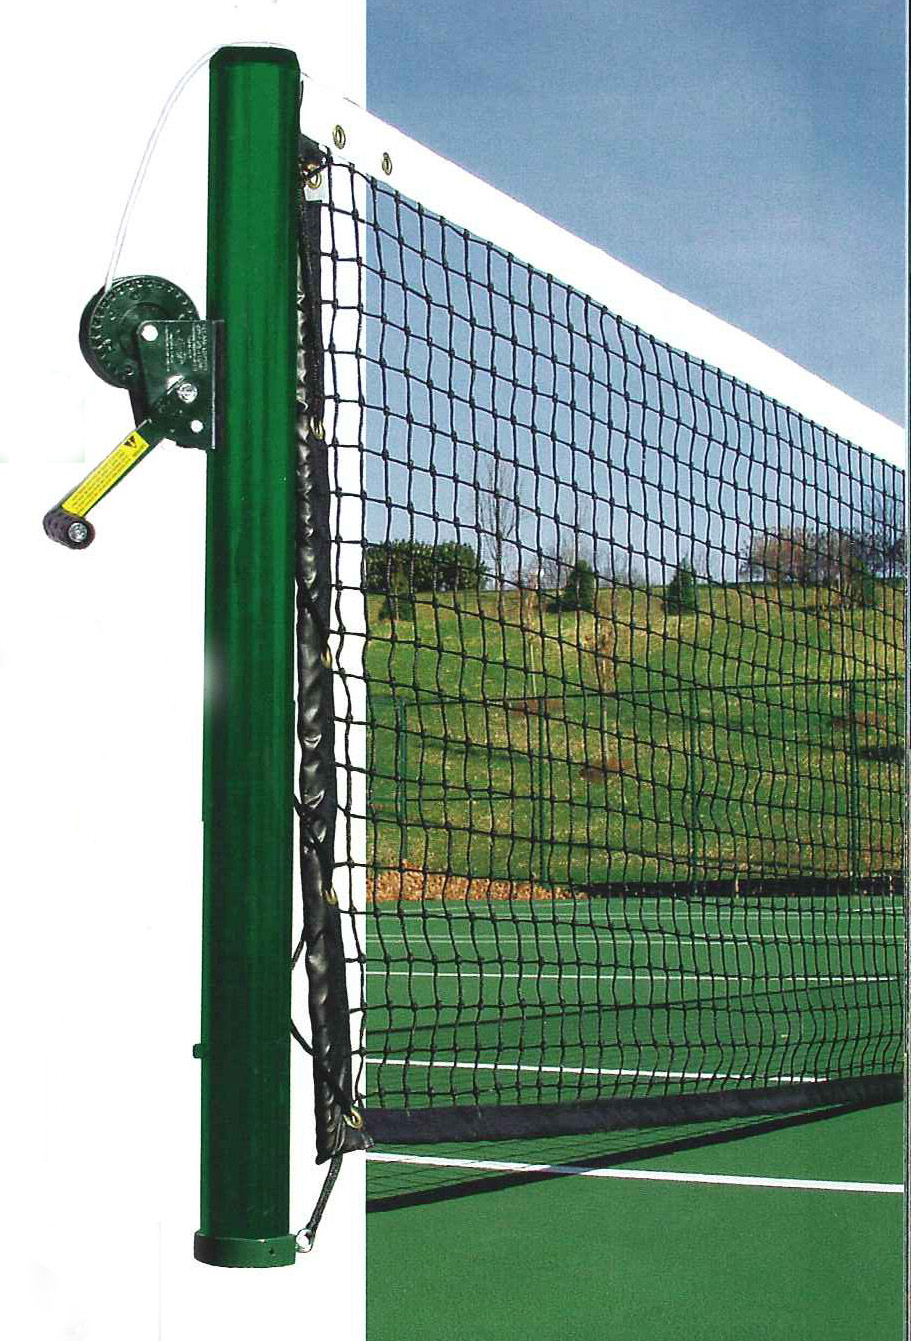 Official Tennis Post And Net Et Amp T Distributors